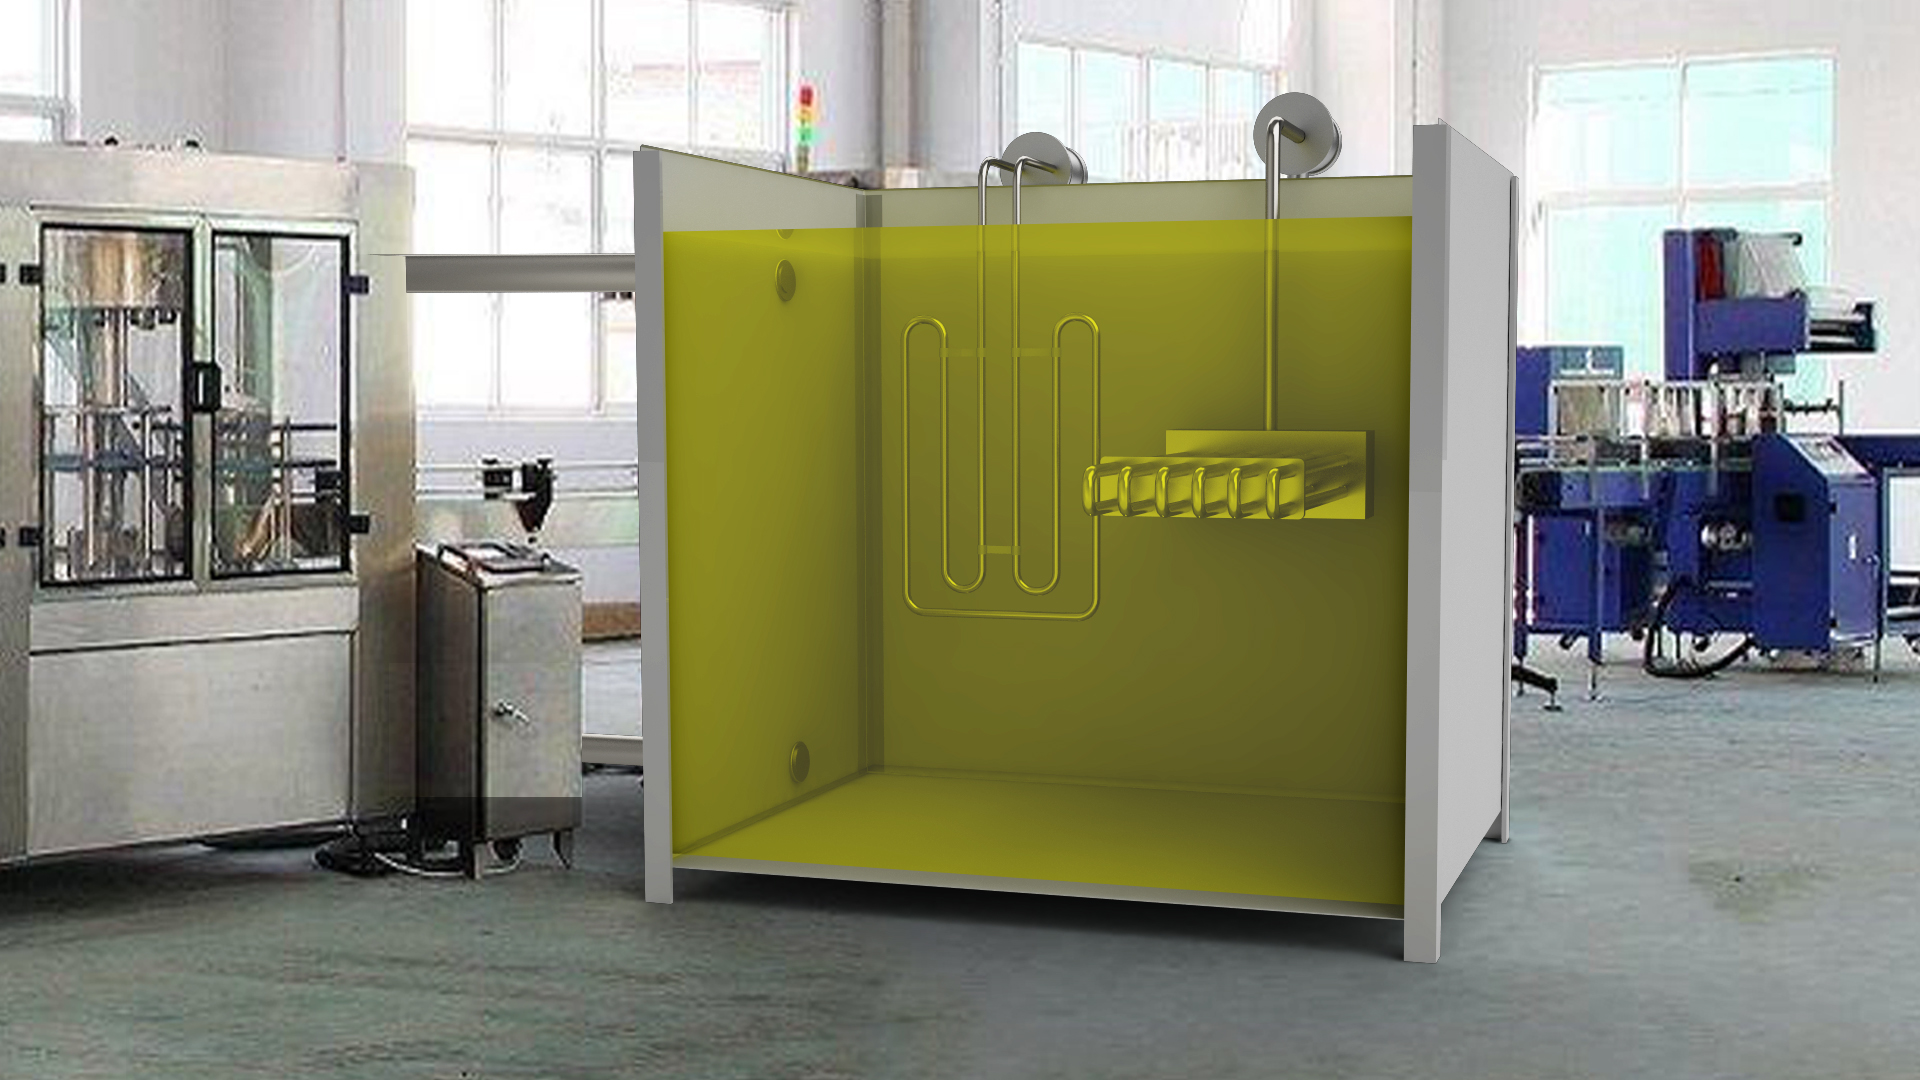 Wattco-Over-the-side-Heater-in-situ